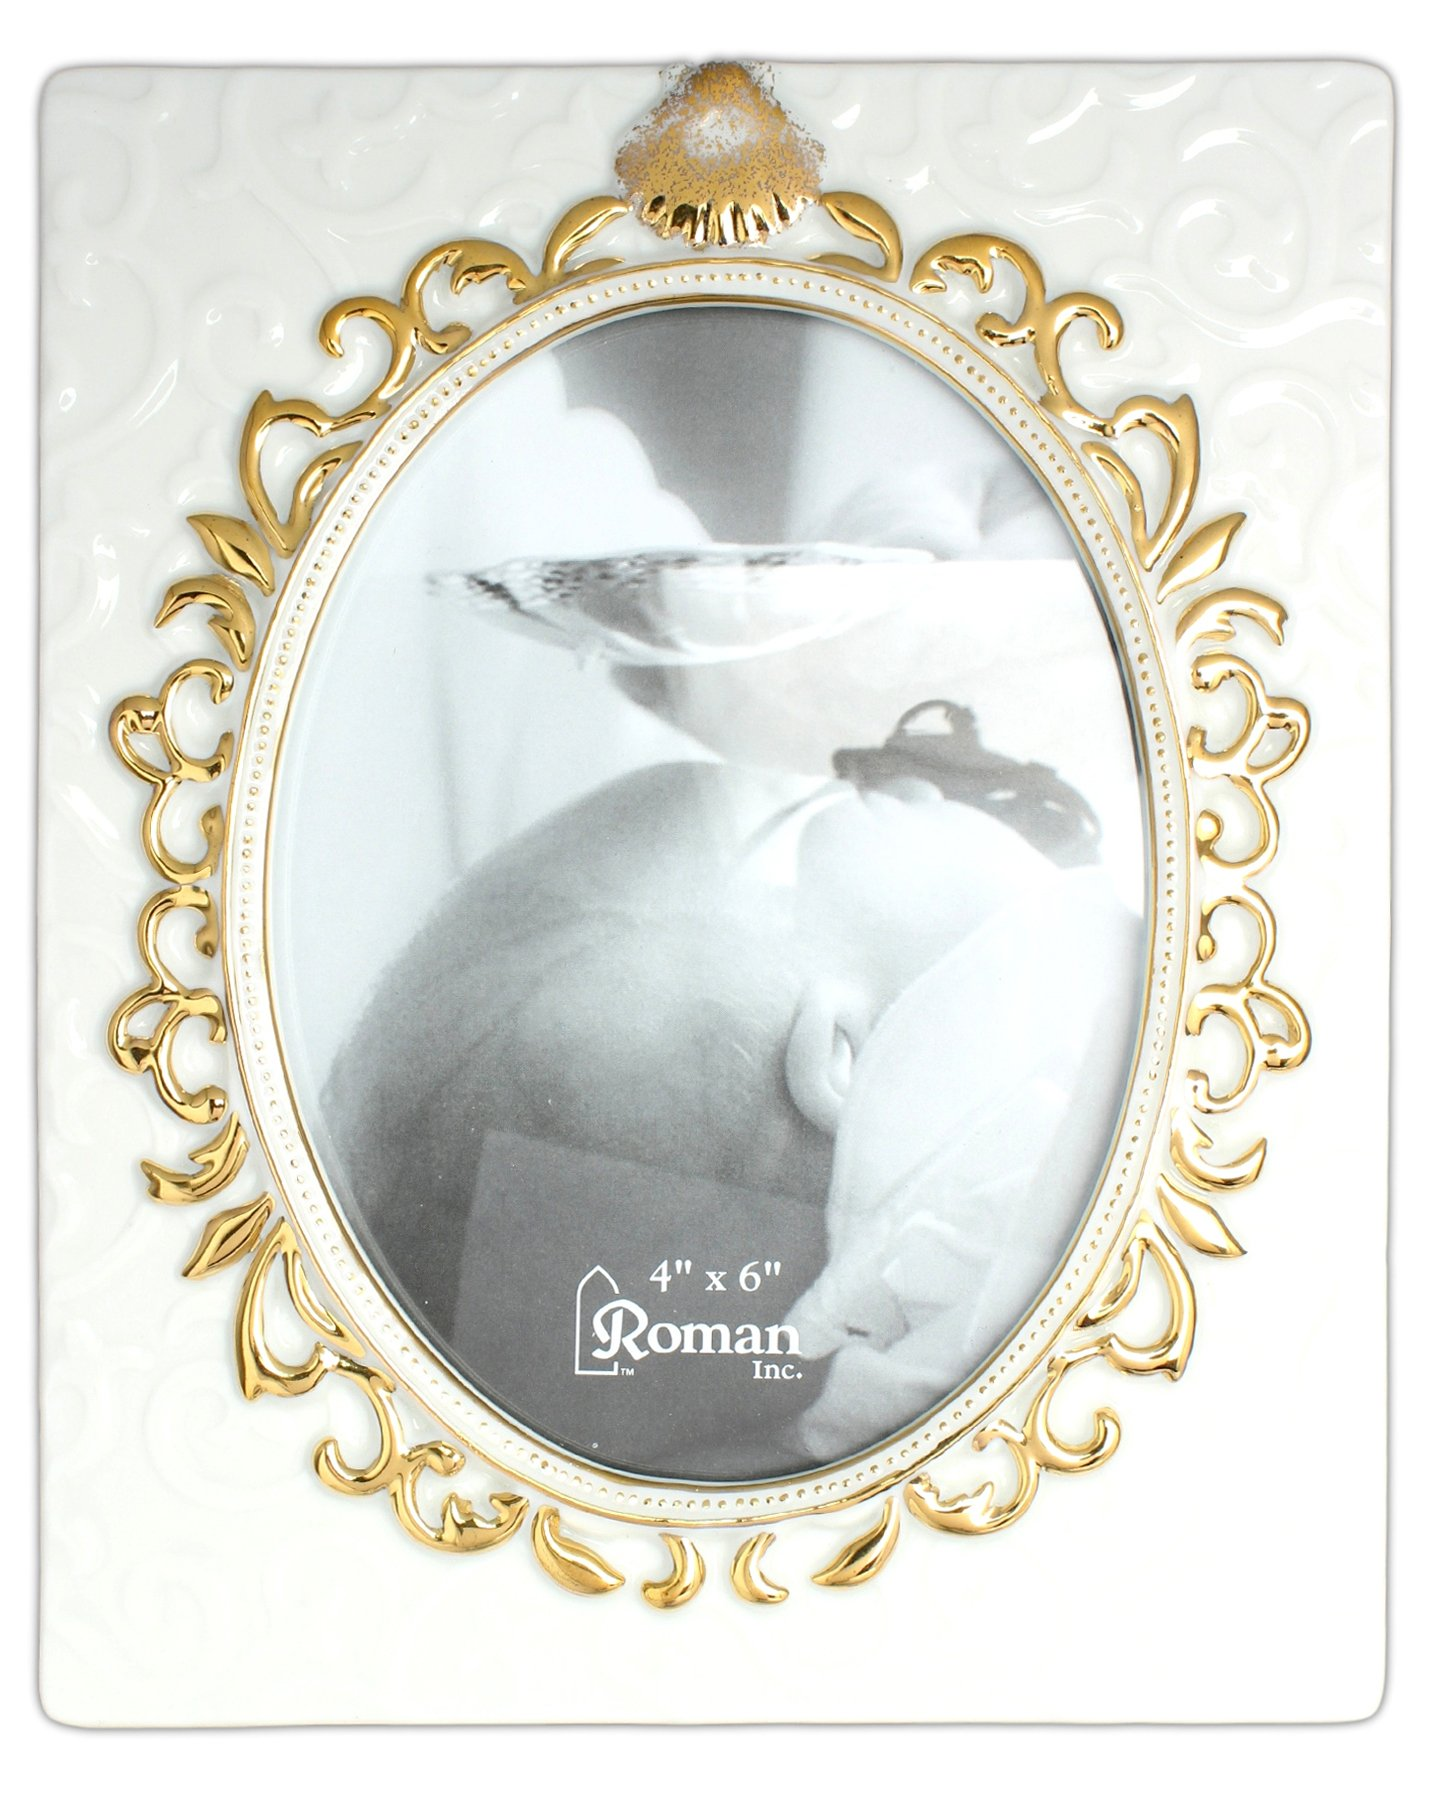 Roman 7'' x 6'' Baby Baptismal Picture Frame Holds 4'' x 6'' Photo